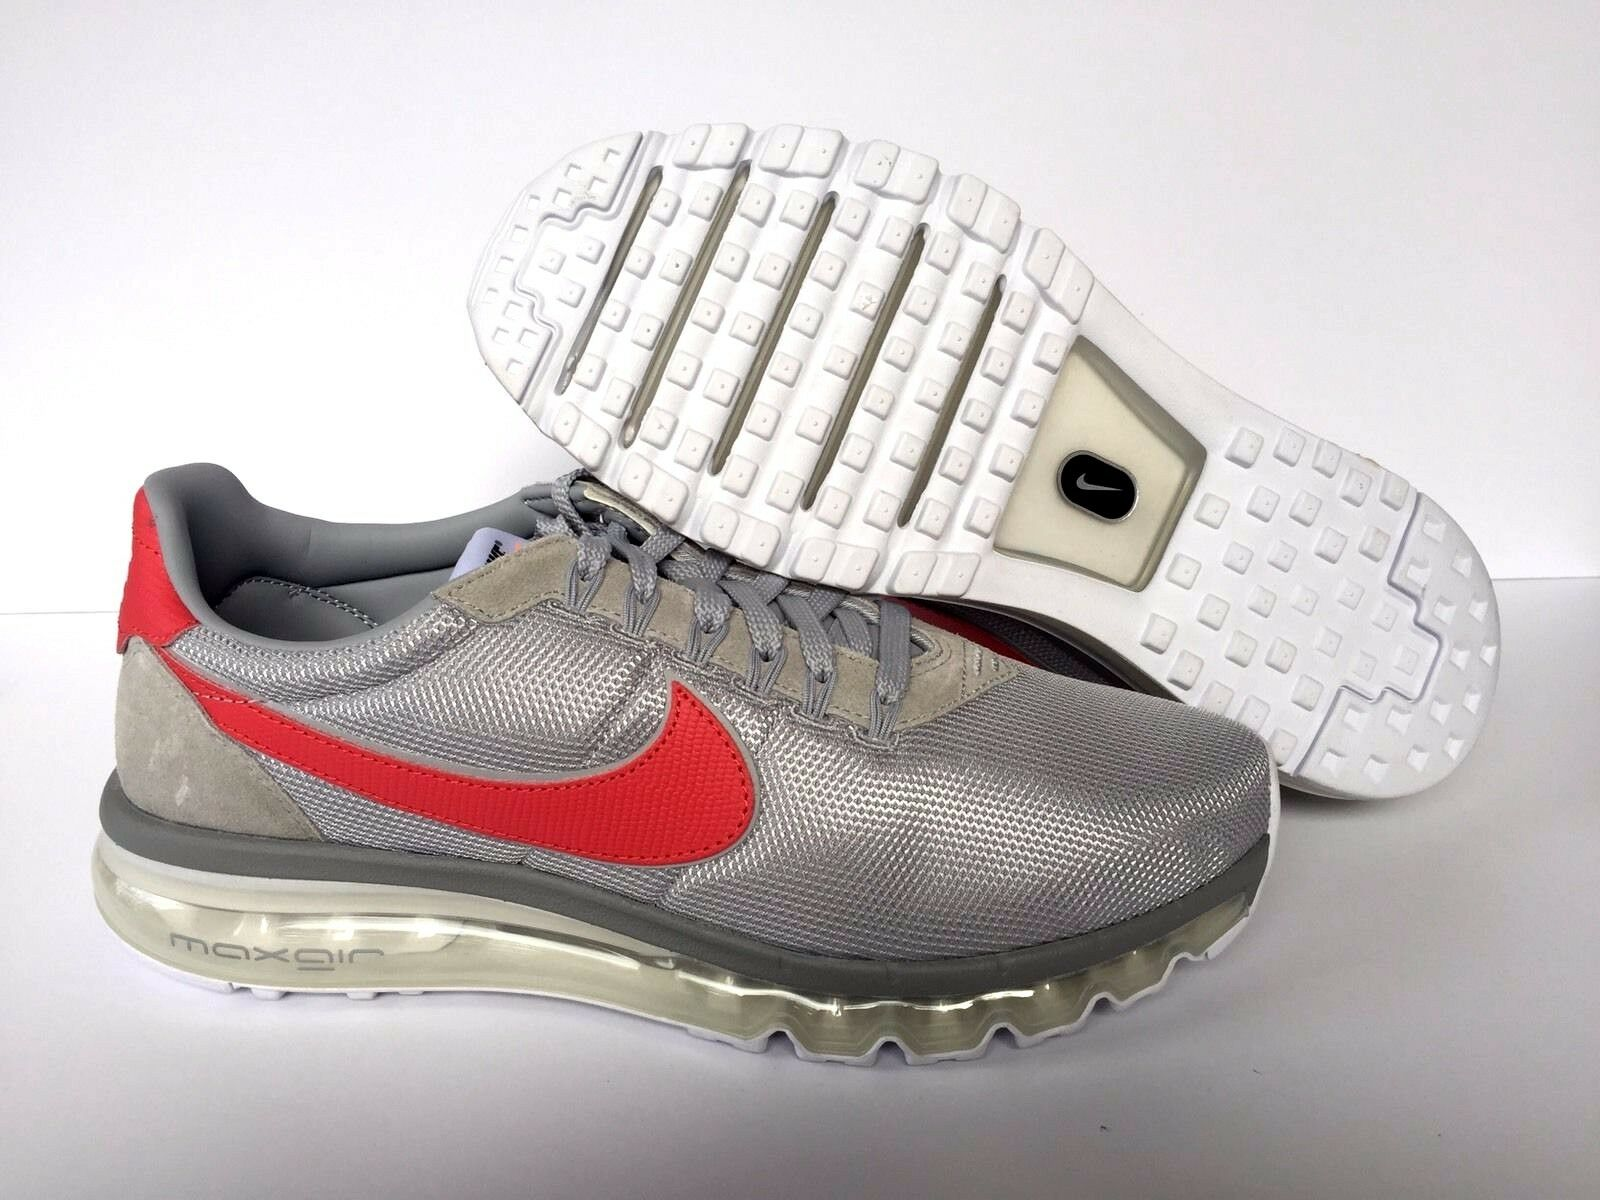 NIKEiD AIR MAX AA3175-992 RED LEATHER/GREY MESH NEW [ AA3175-992 MAX ]   Uomo SZ 11.5 1cad0c